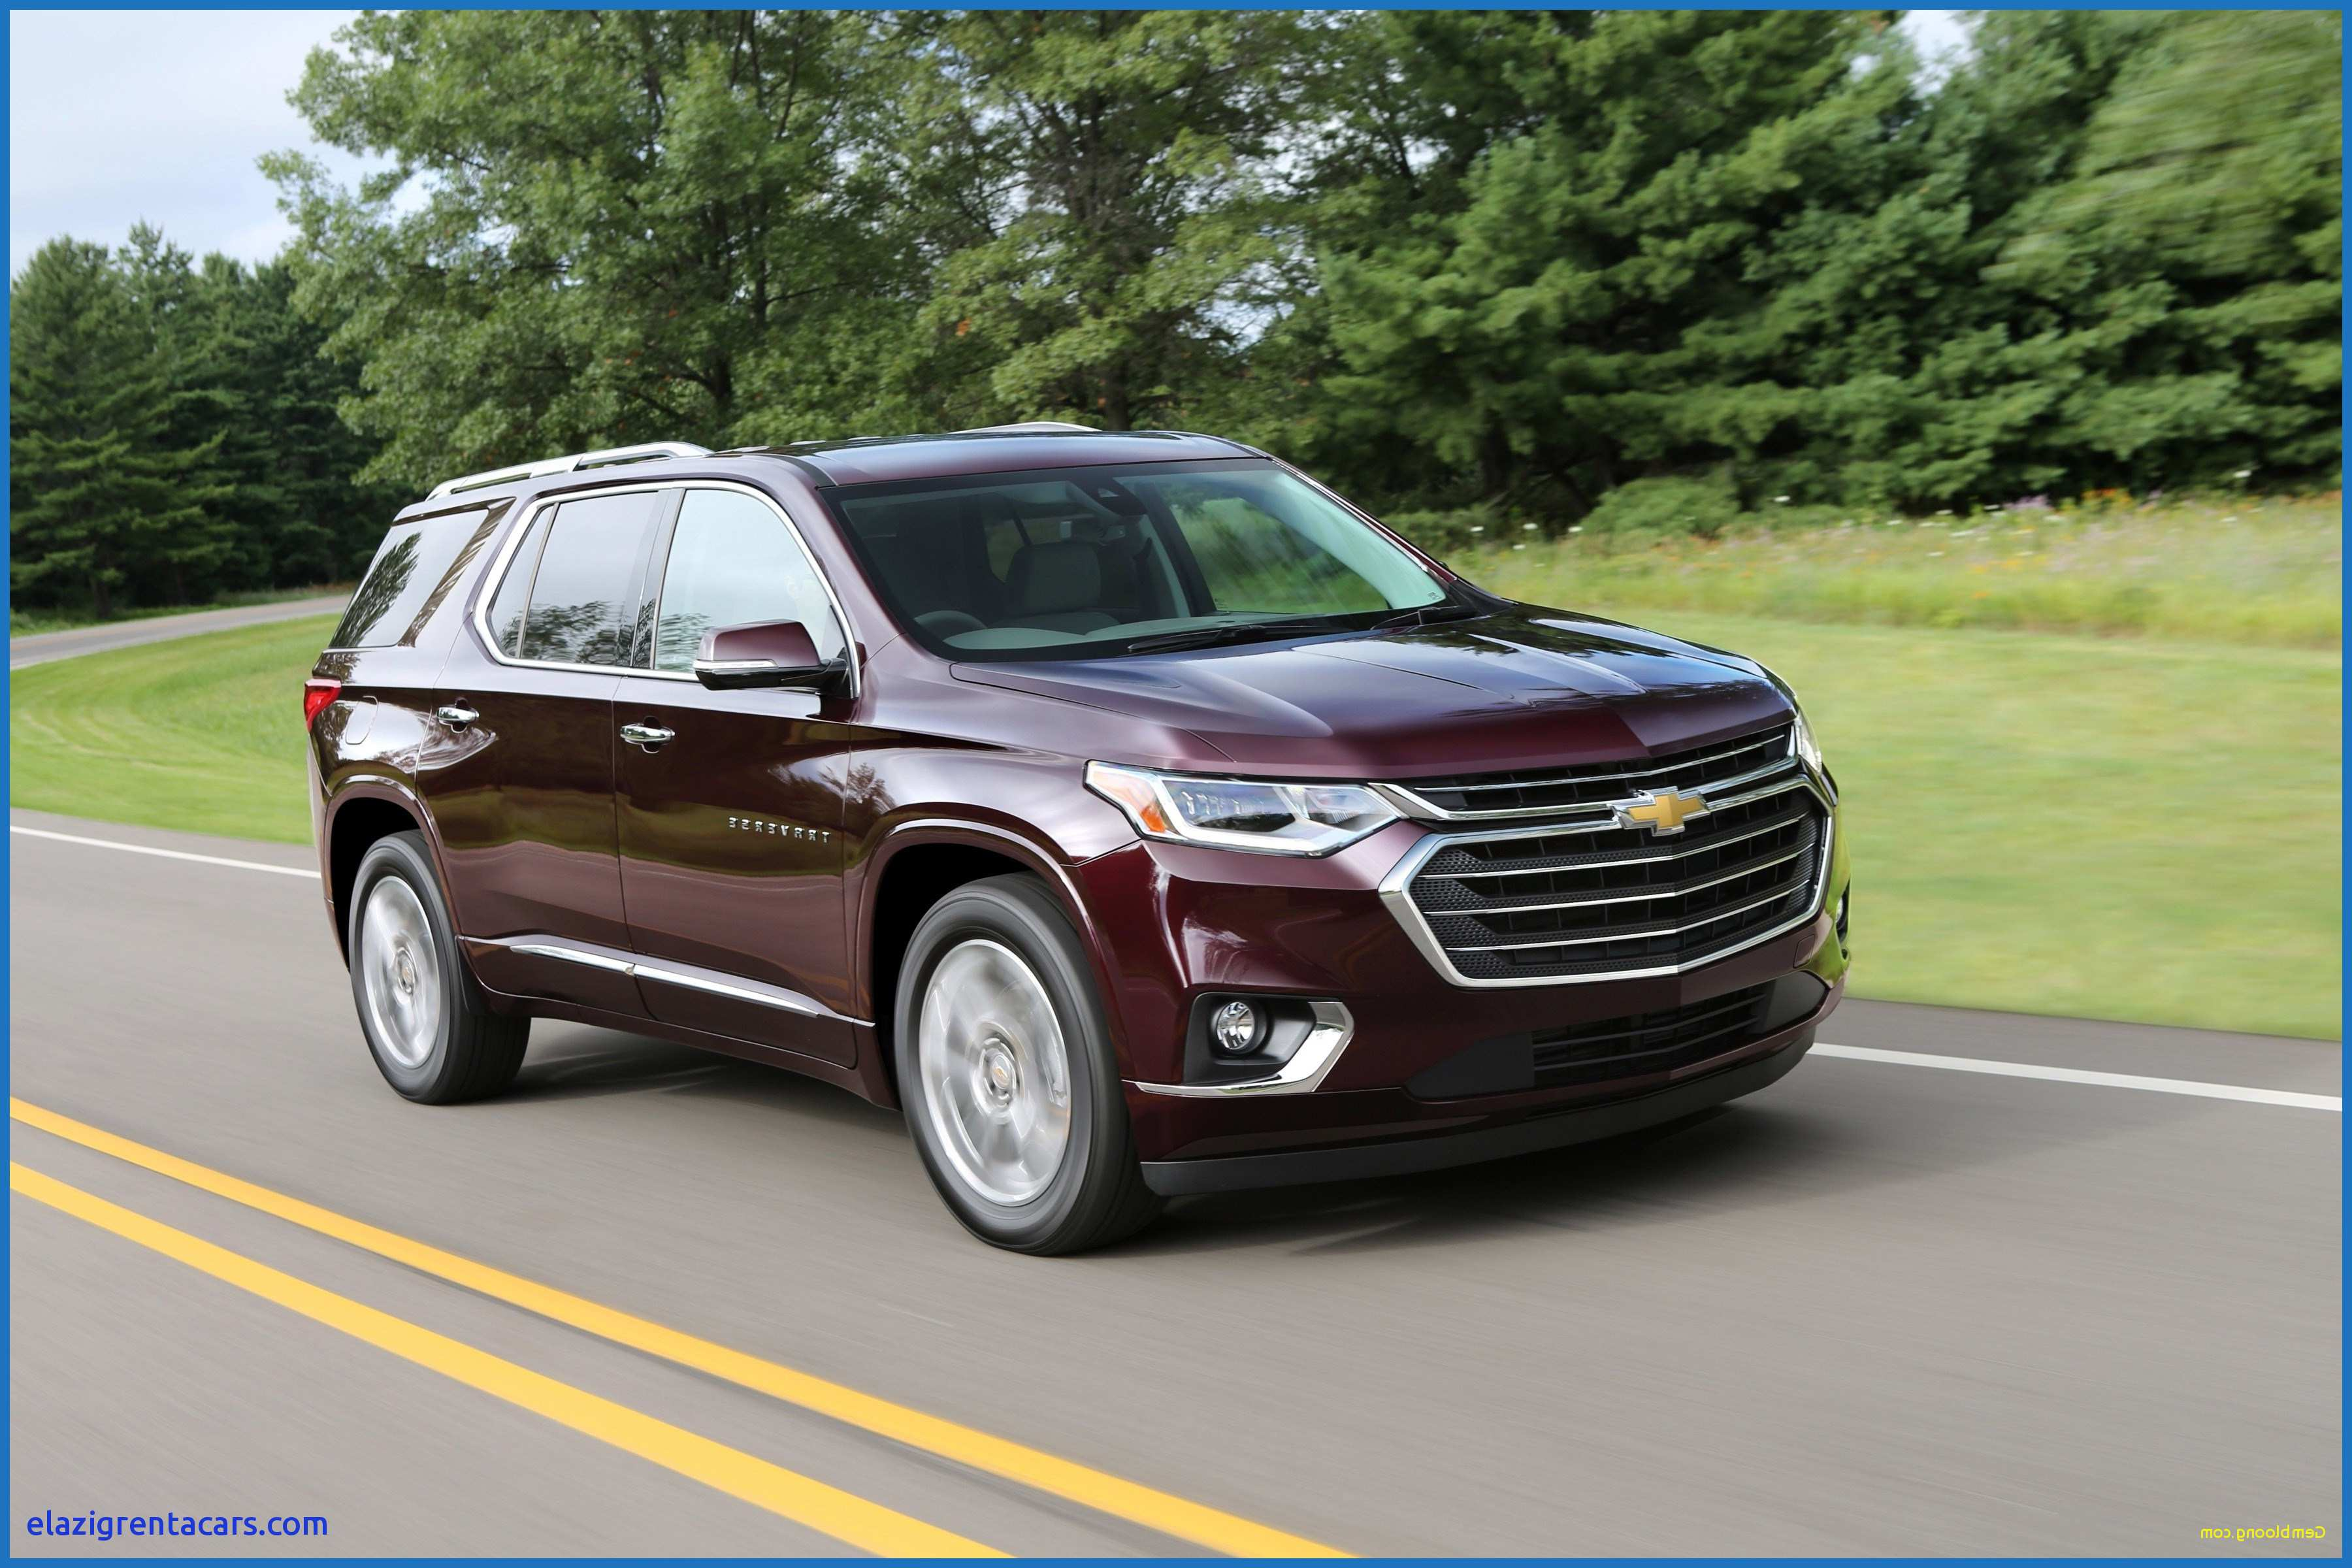 93 Great Best High Country Chevrolet 2019 Price And Review Specs and Review with Best High Country Chevrolet 2019 Price And Review